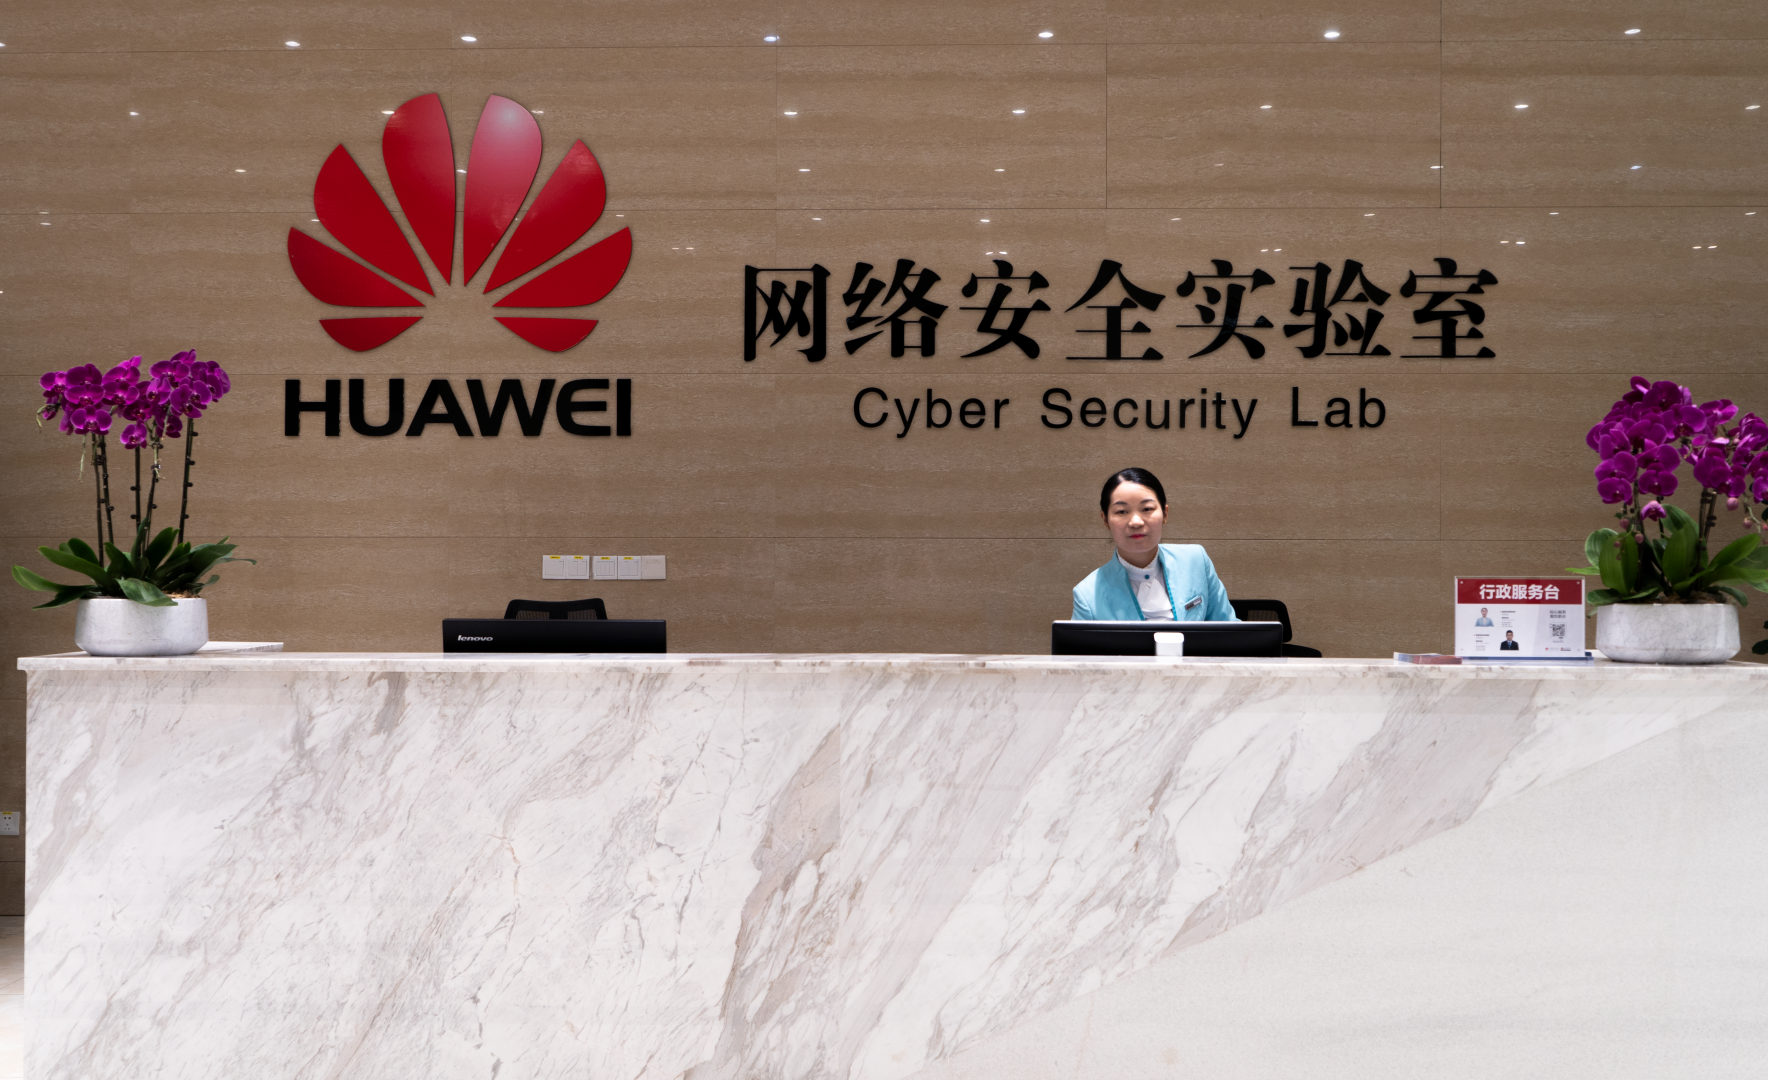 Huawei-Cyber-Security-Lab